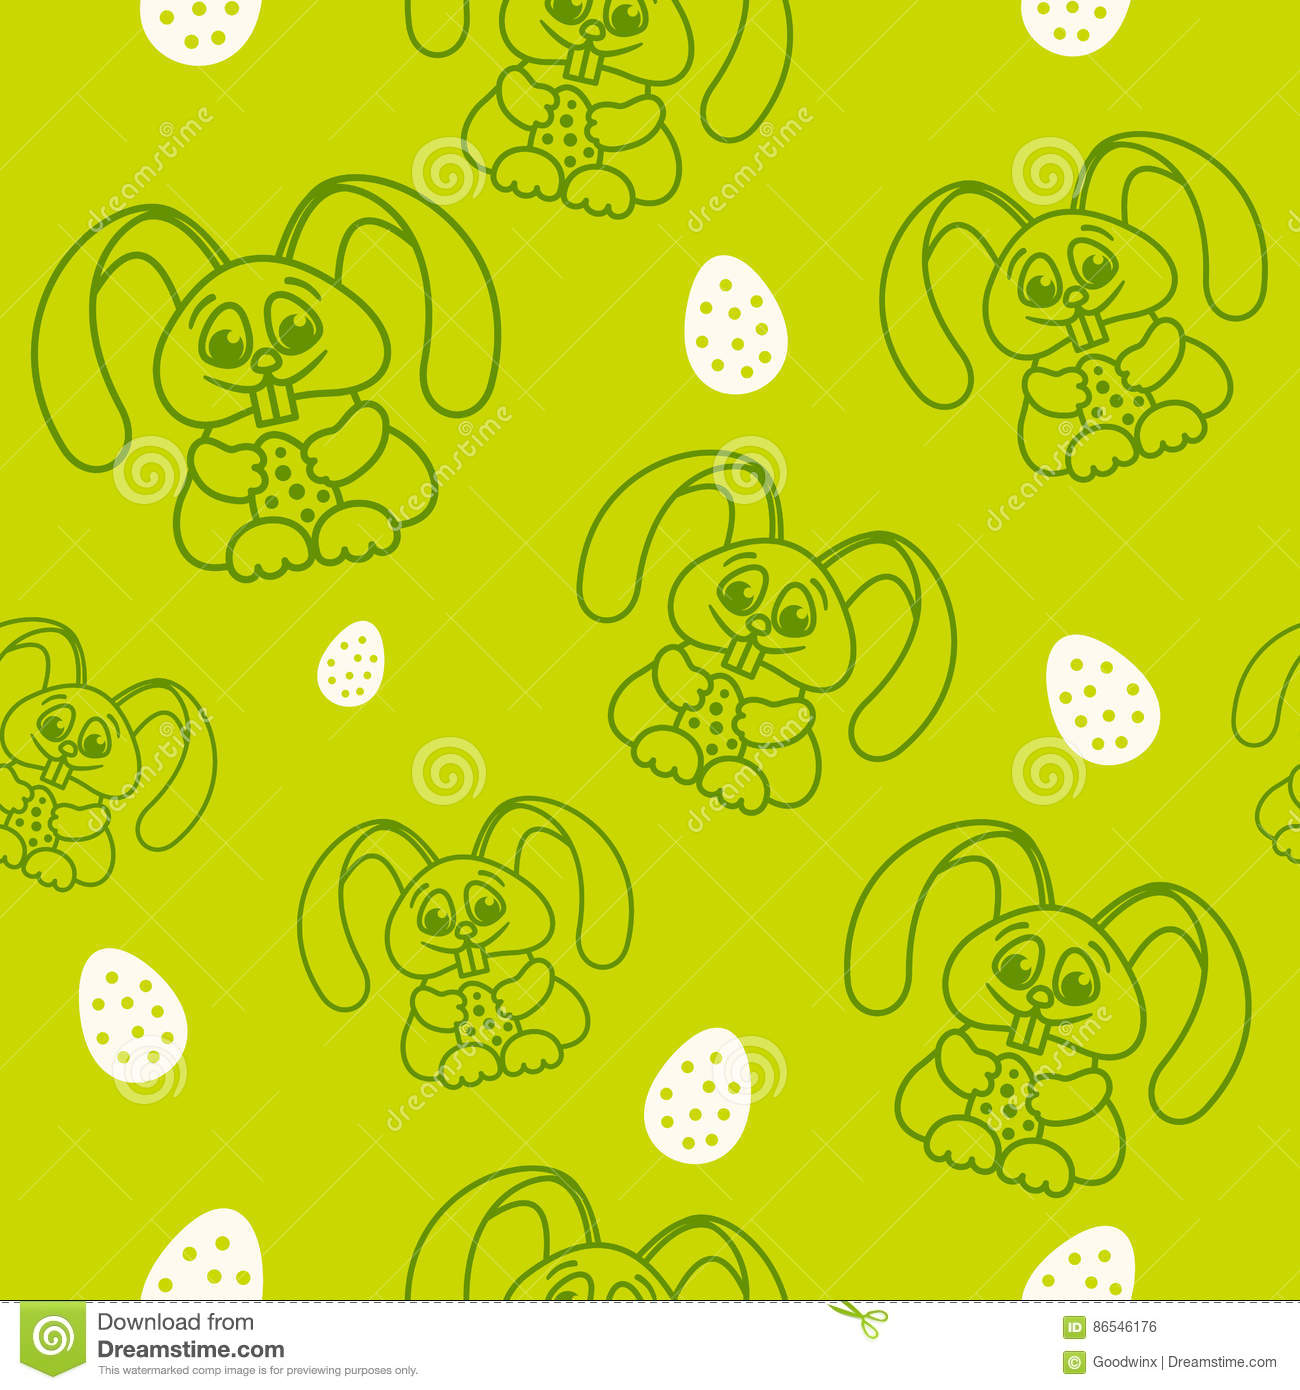 Pattern fun easter bunny with easter eggs seamless texture green